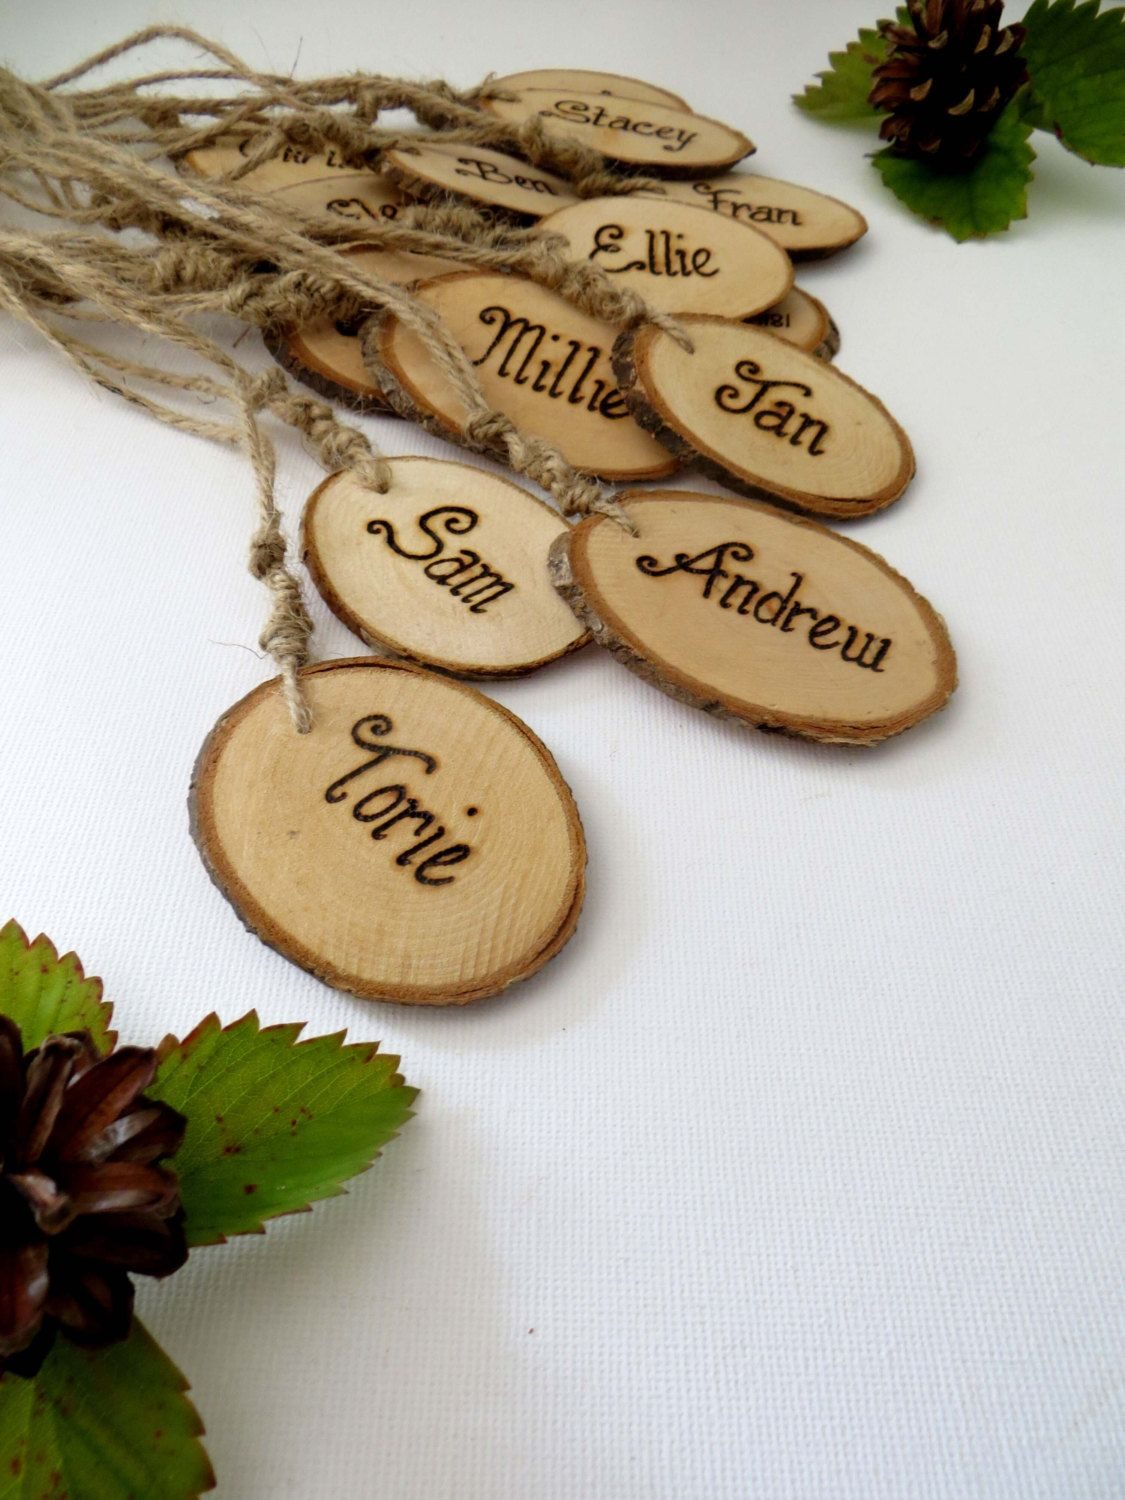 rustic wedding name tags 10 key ring wooden place cards escort cards favours napkin holder wood slice place setting